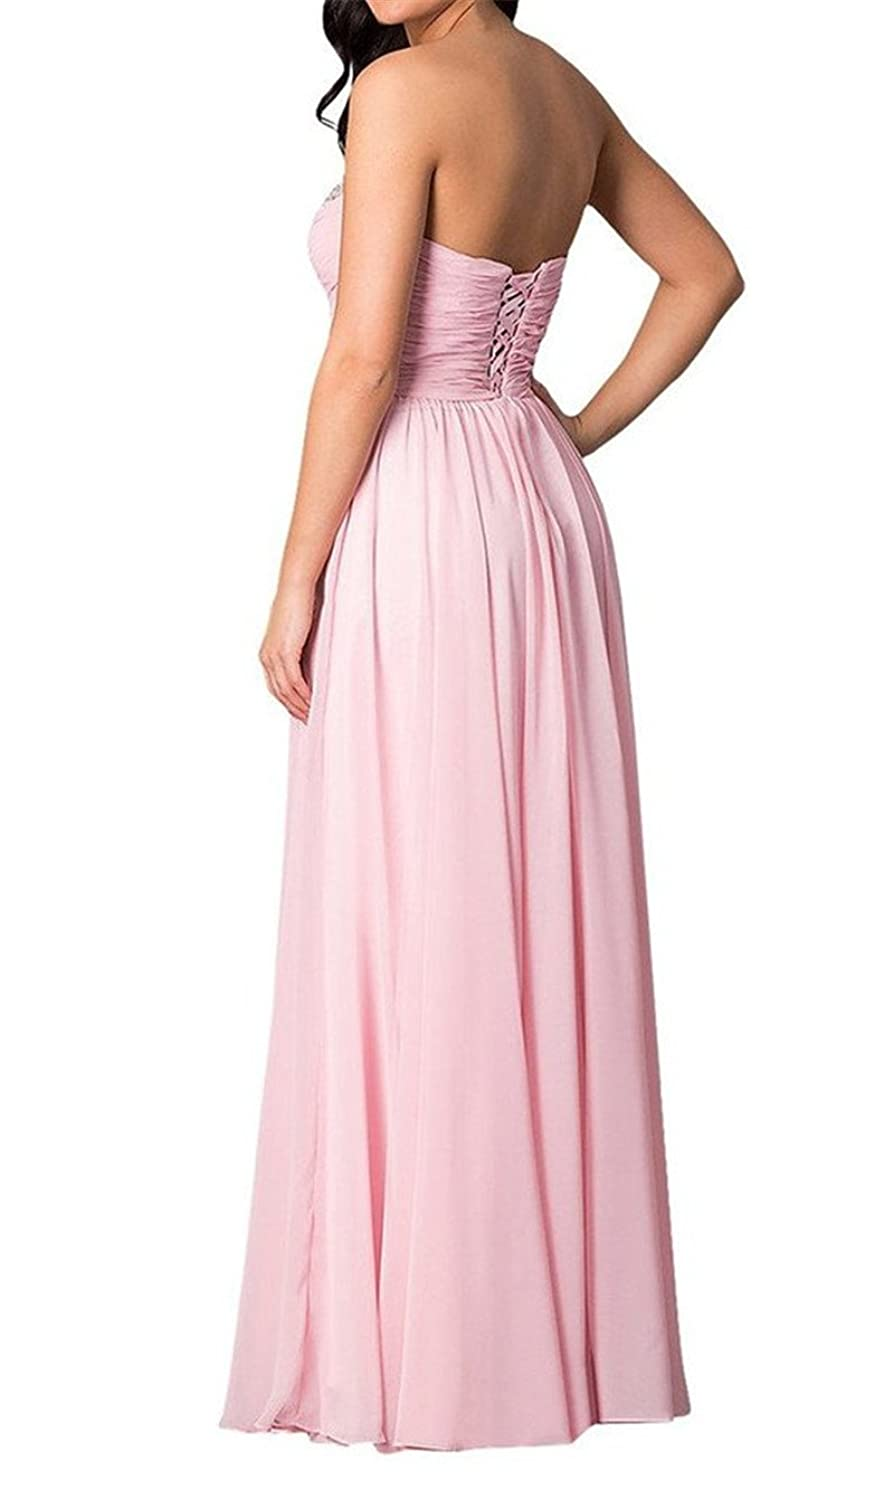 AngelDragon Strapless Beading Evening Dresses Long Party Gowns Empire Prom